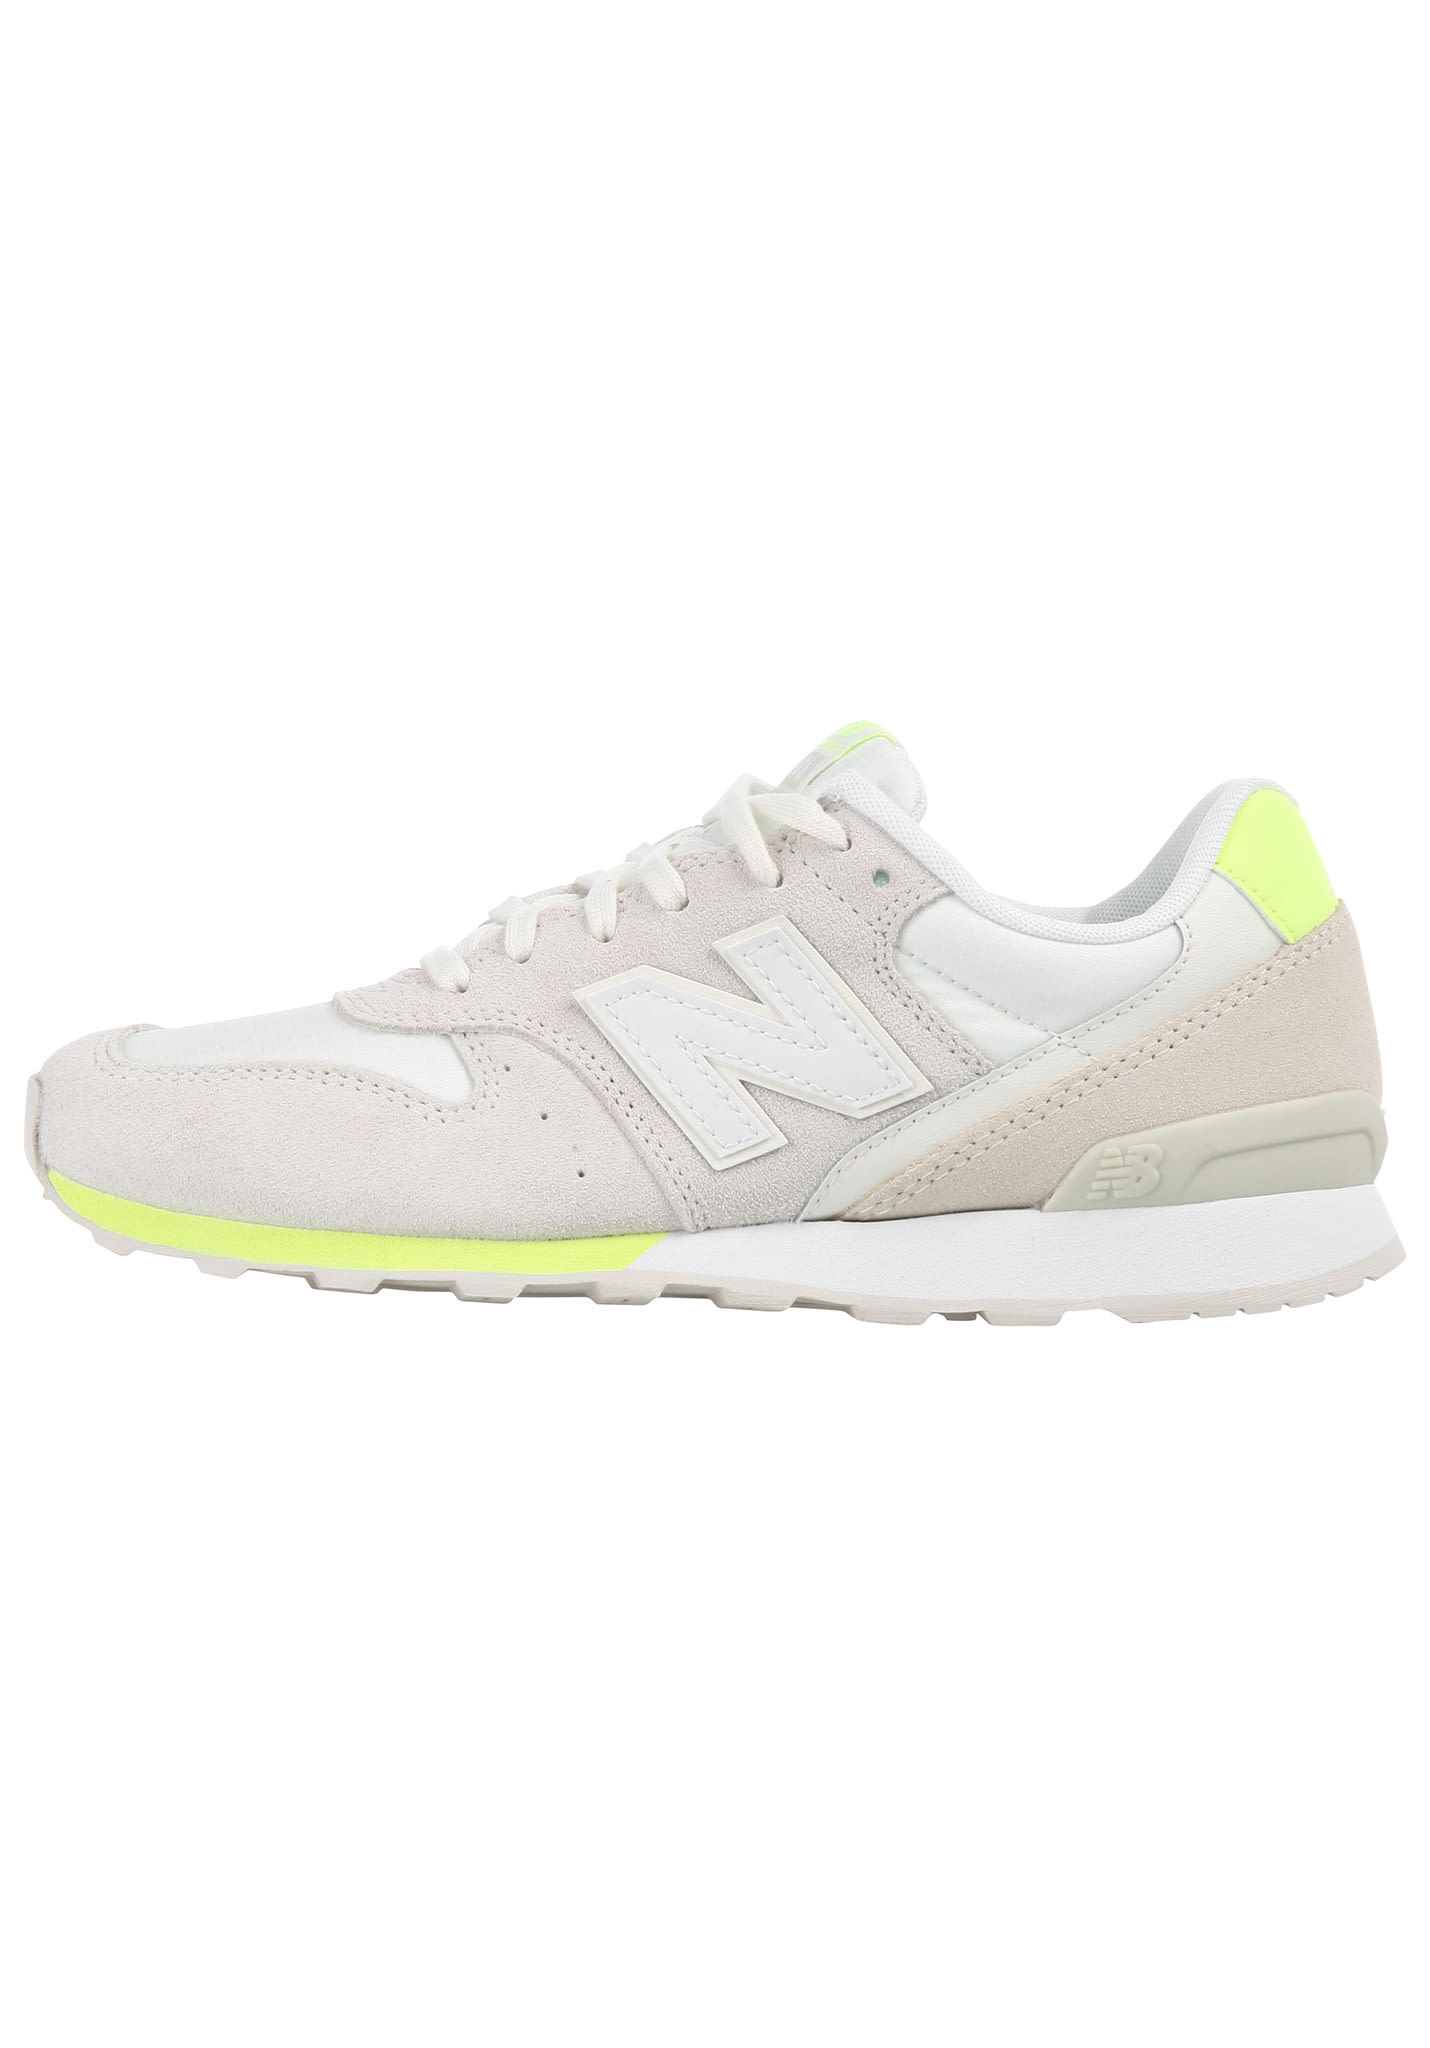 NEW BALANCE WR996 D Sneakers for Women Beige